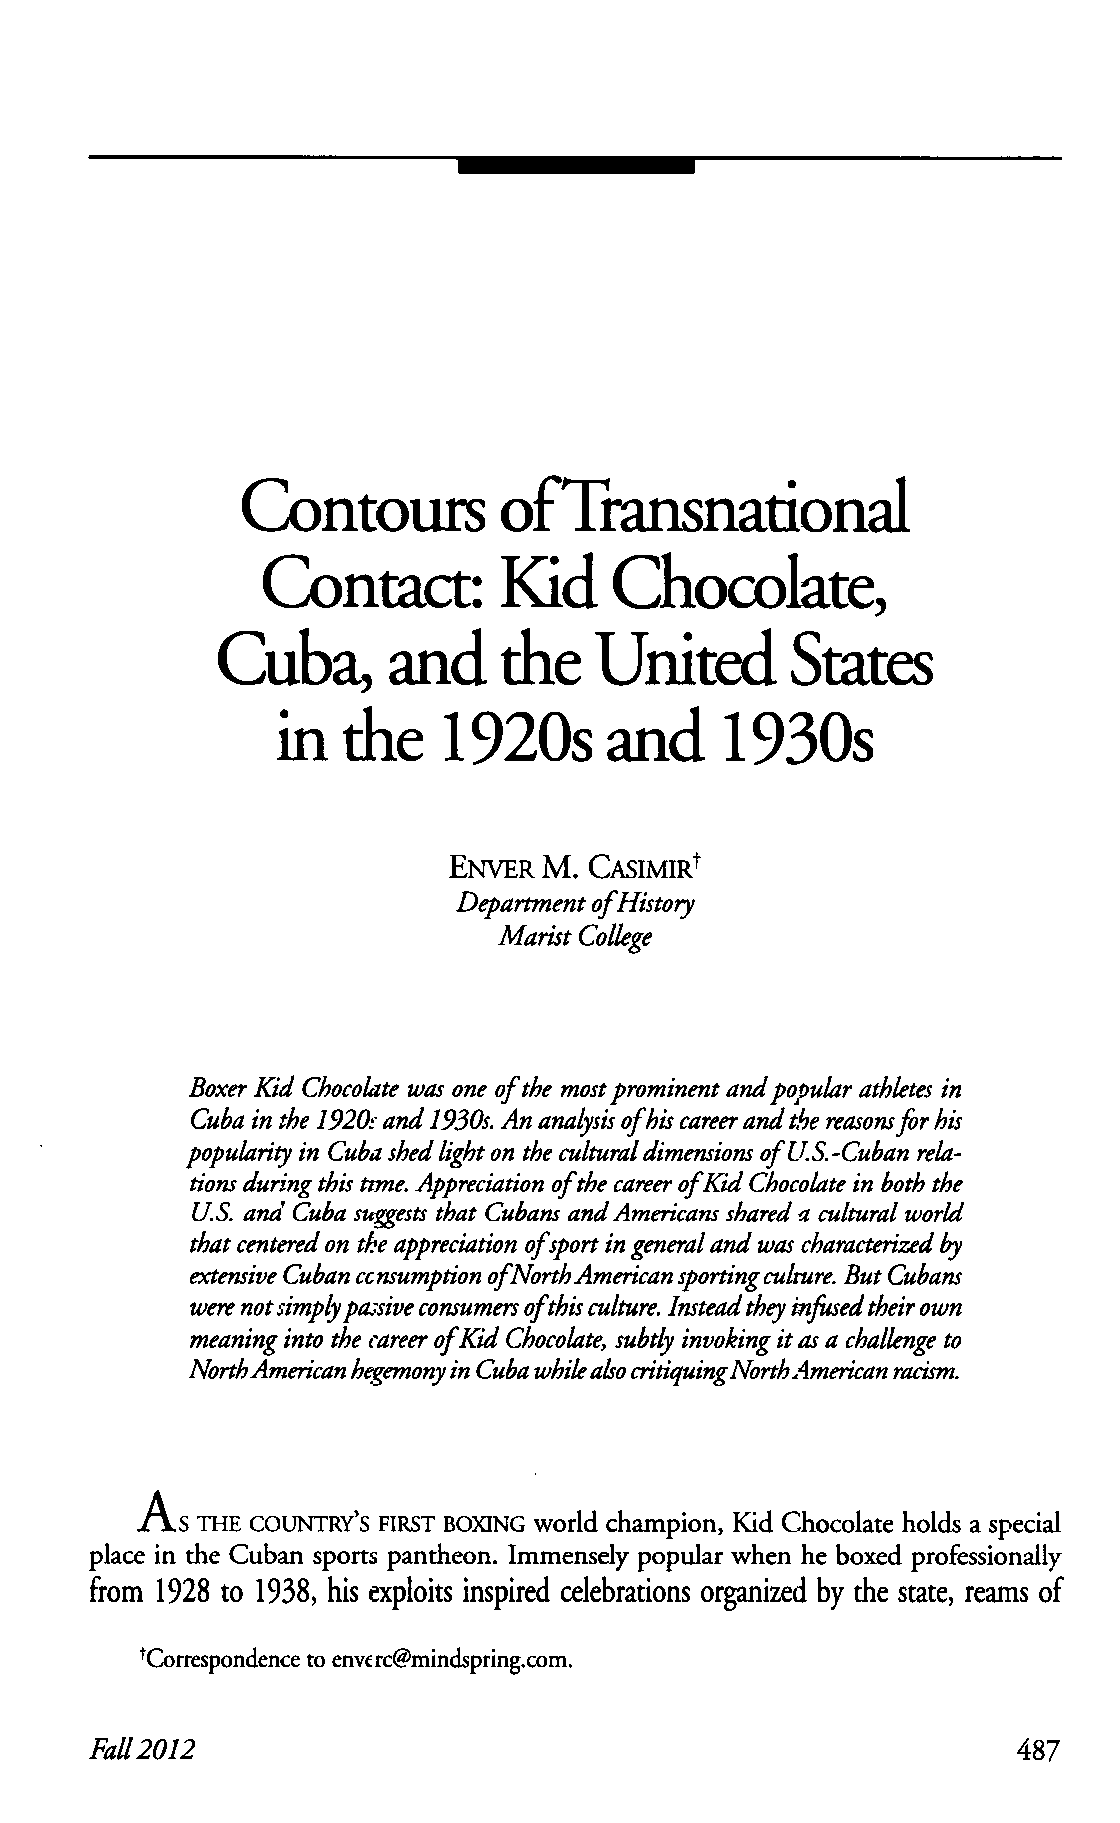 Contours of Transnational Contact: Kid Chocolate, Cuba, and